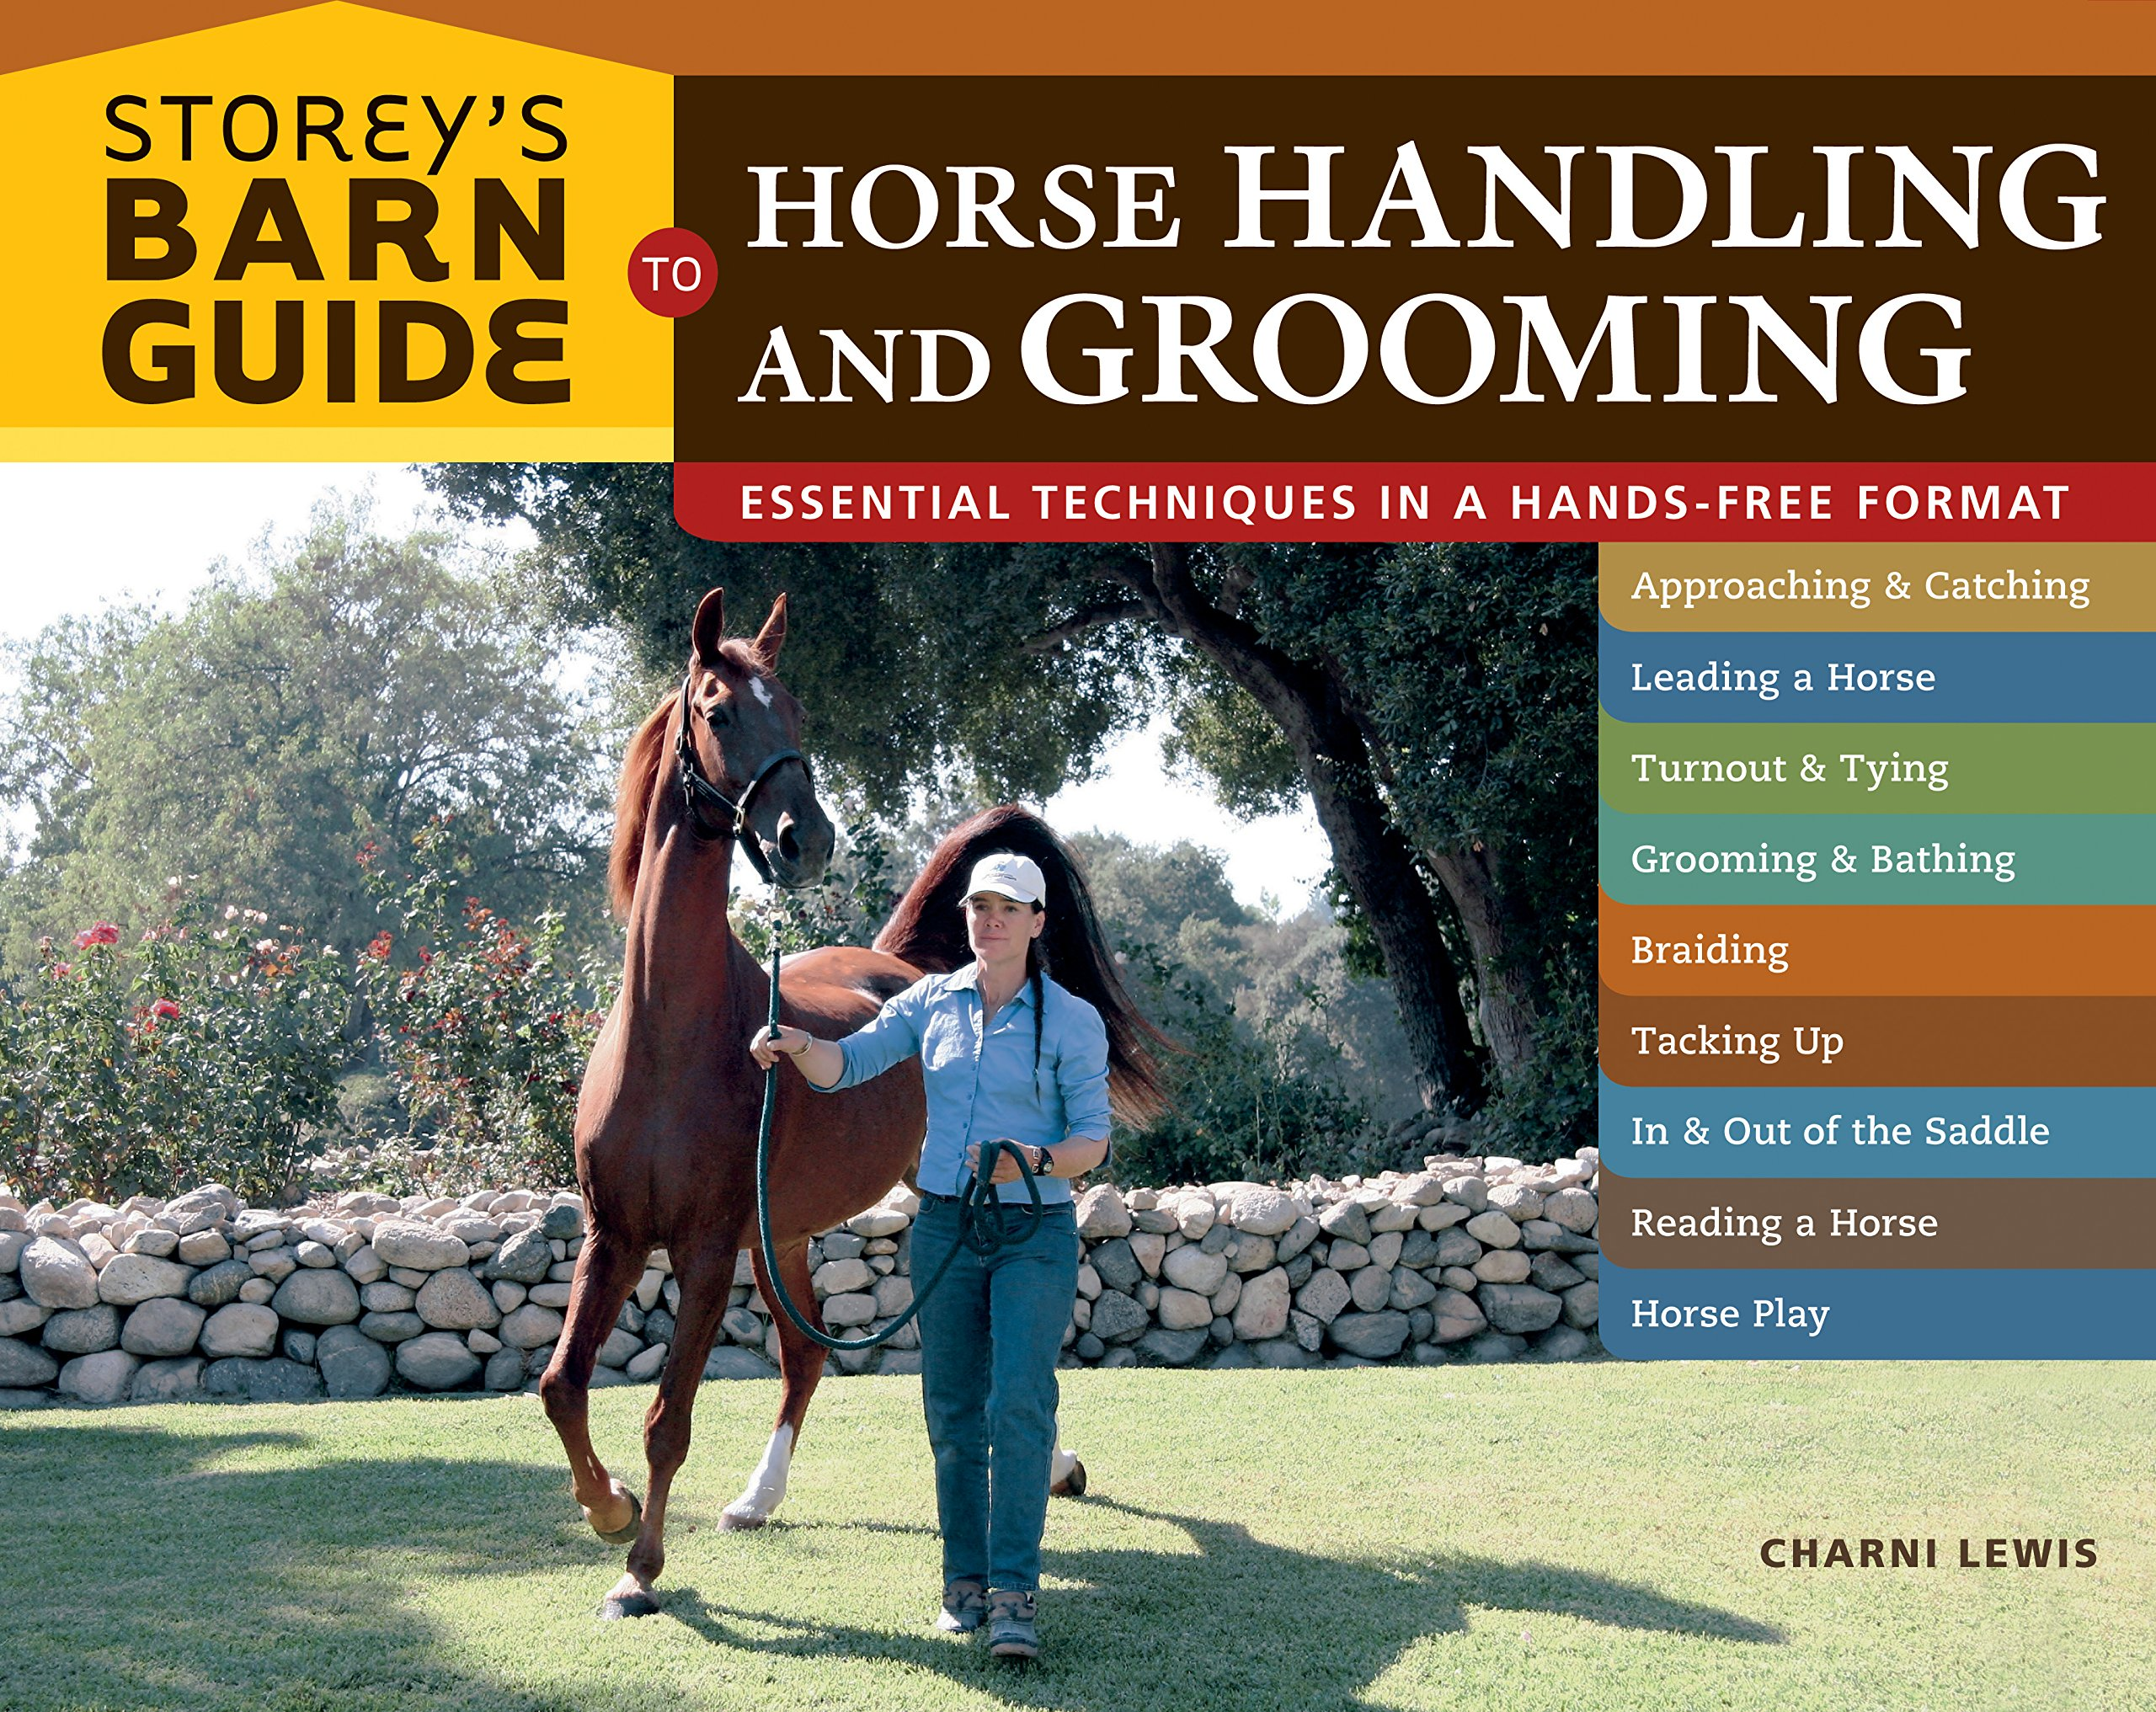 Download Storey's Barn Guide to Horse Handling and Grooming PDF